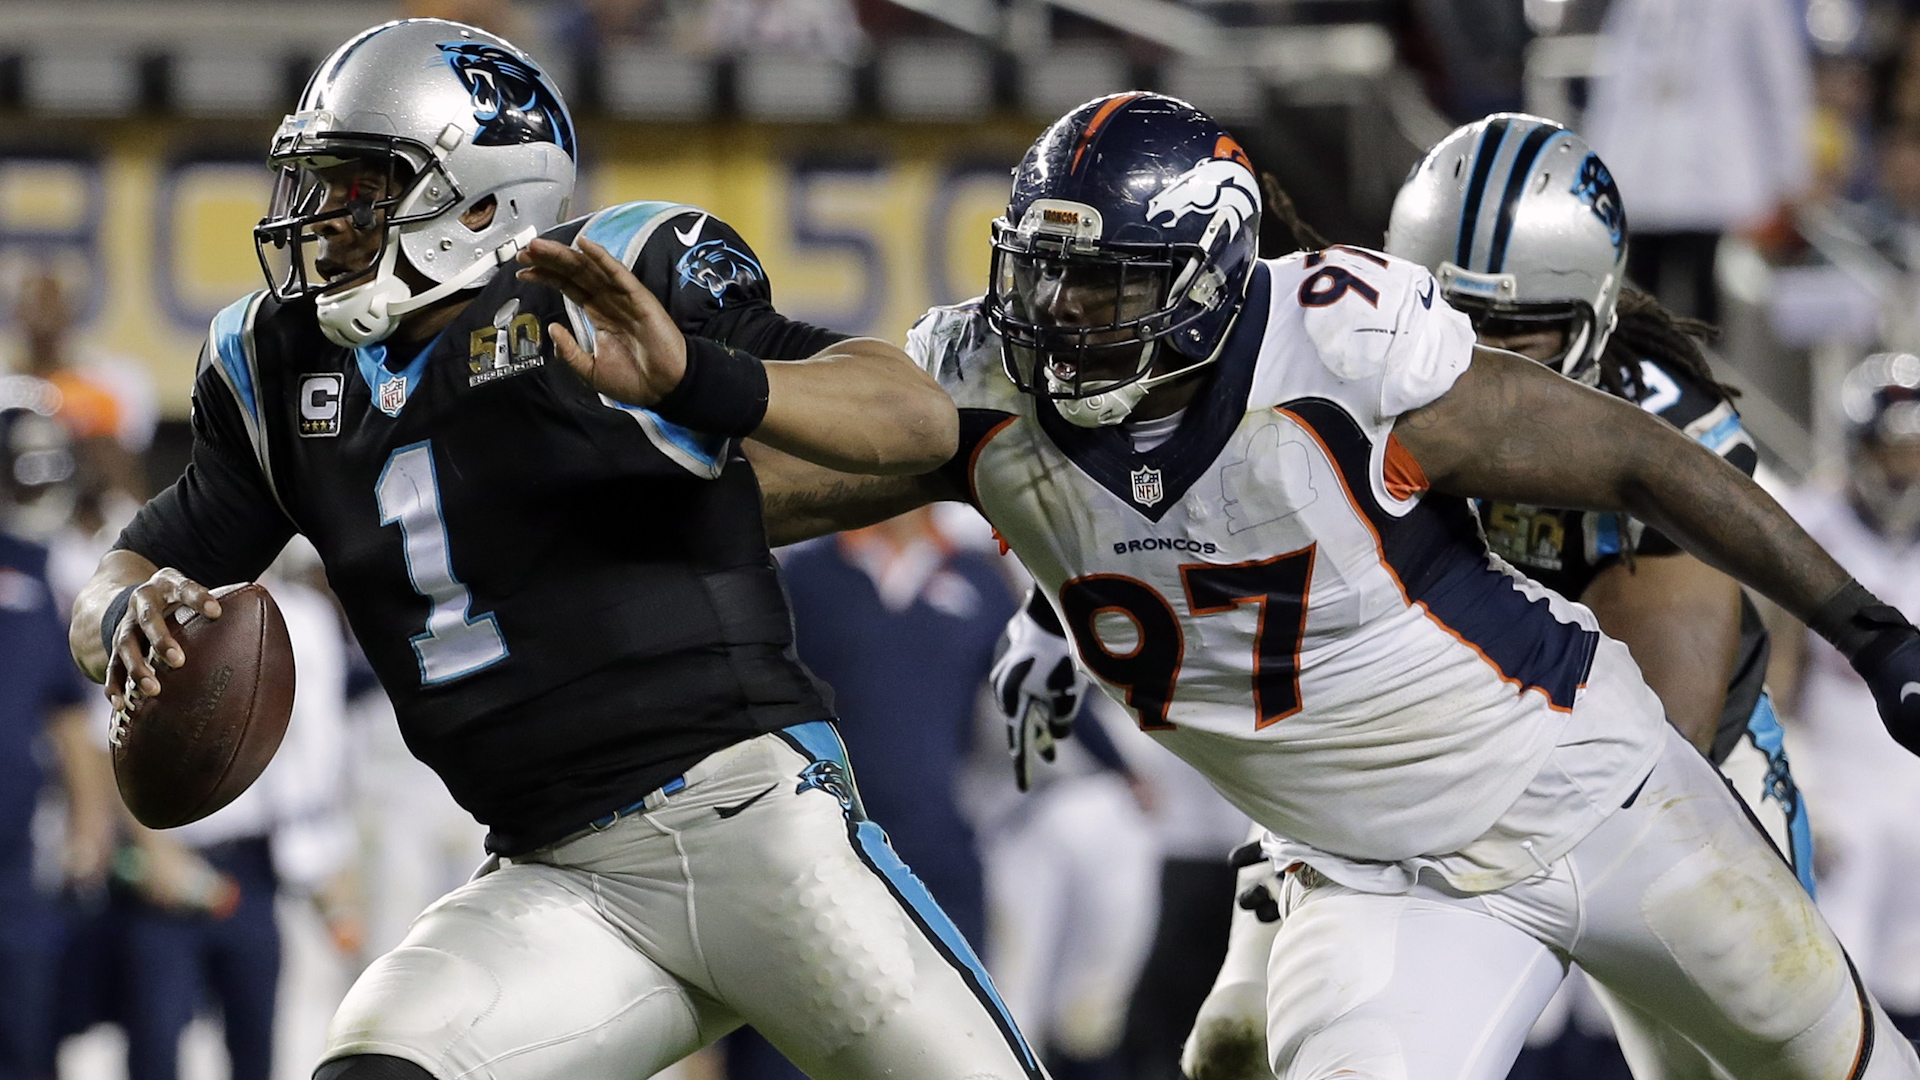 The MMQB's Peter King and Andy Benoit breakdown the Denver Broncos' containment of the Carolina Panthers' QB Cam Newton.